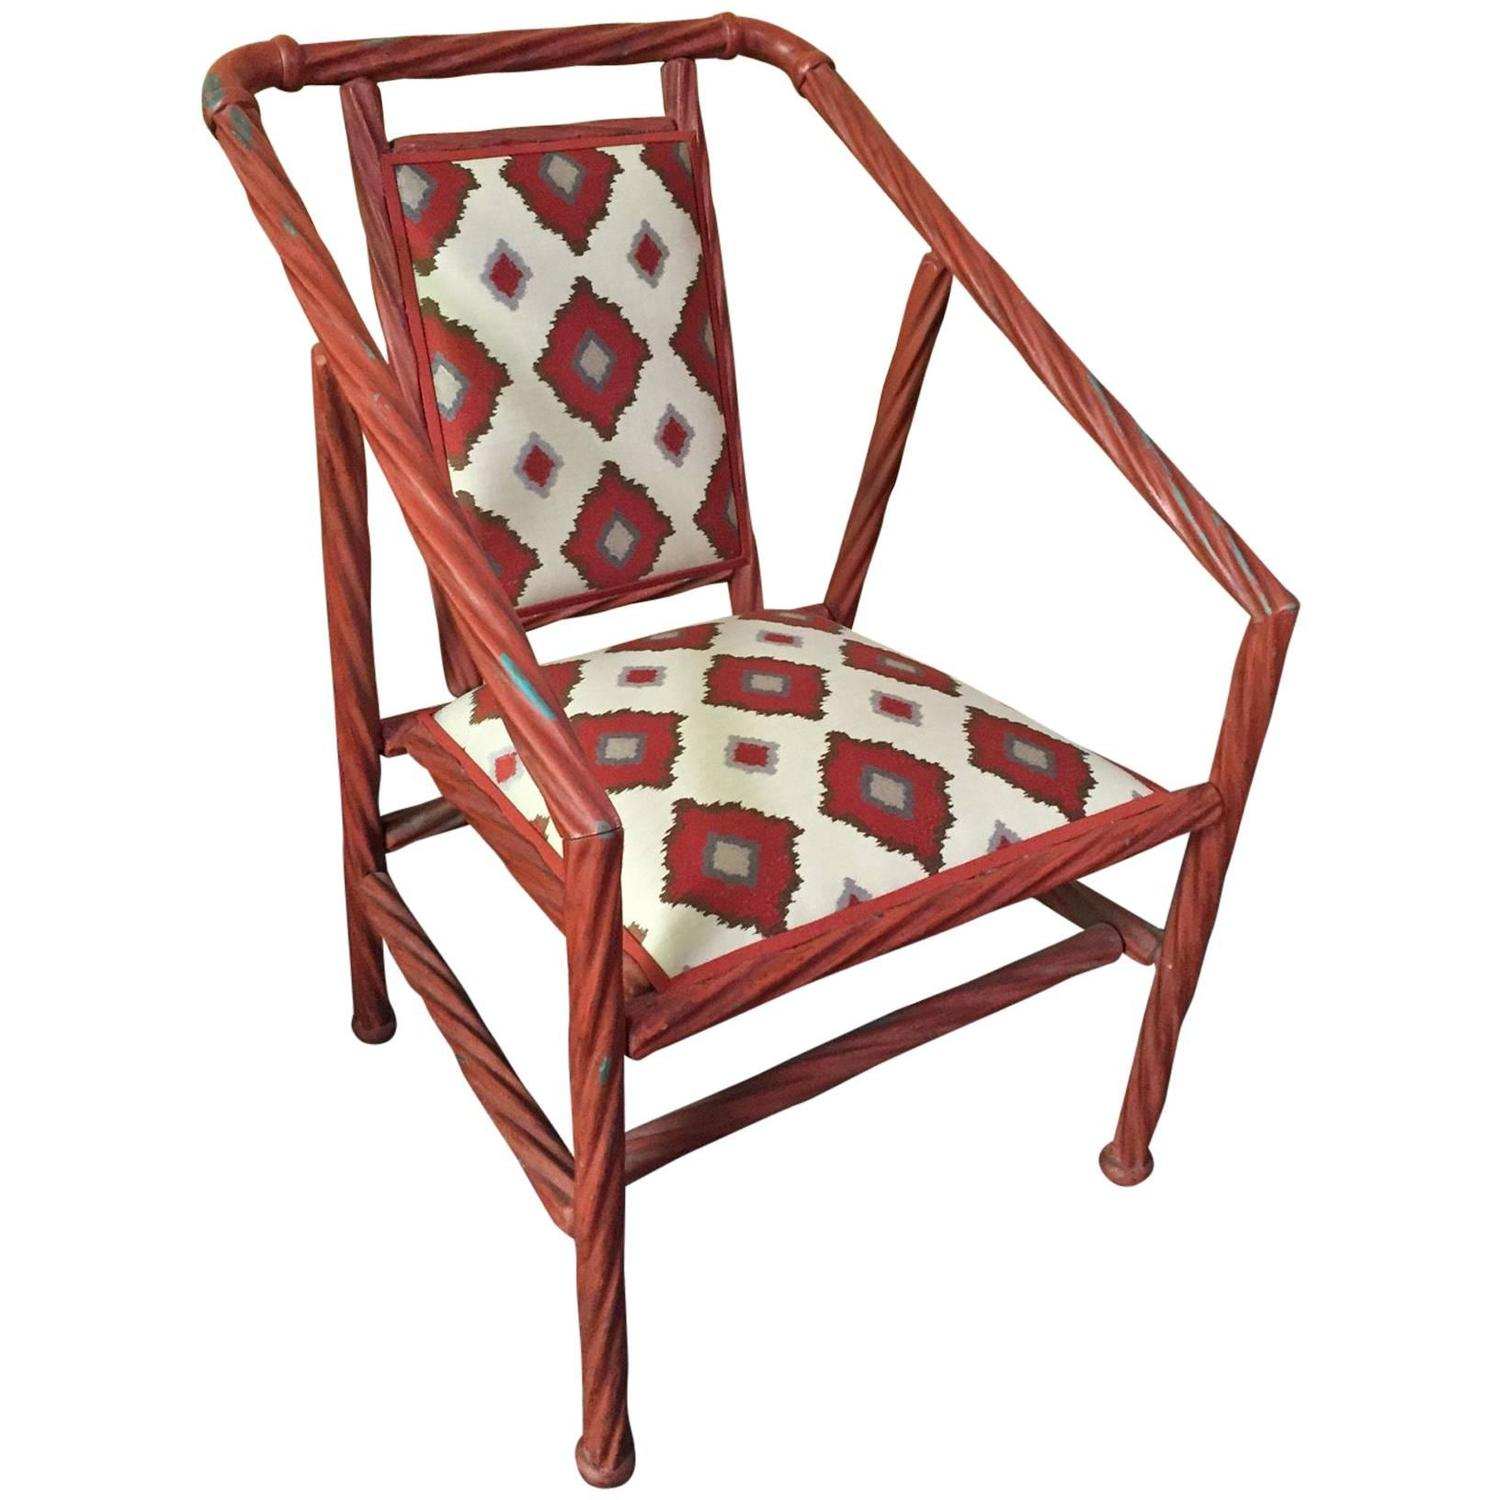 where to get chairs reupholstered baby trend high chair replacement cover vintage in martin bullard 39s lola